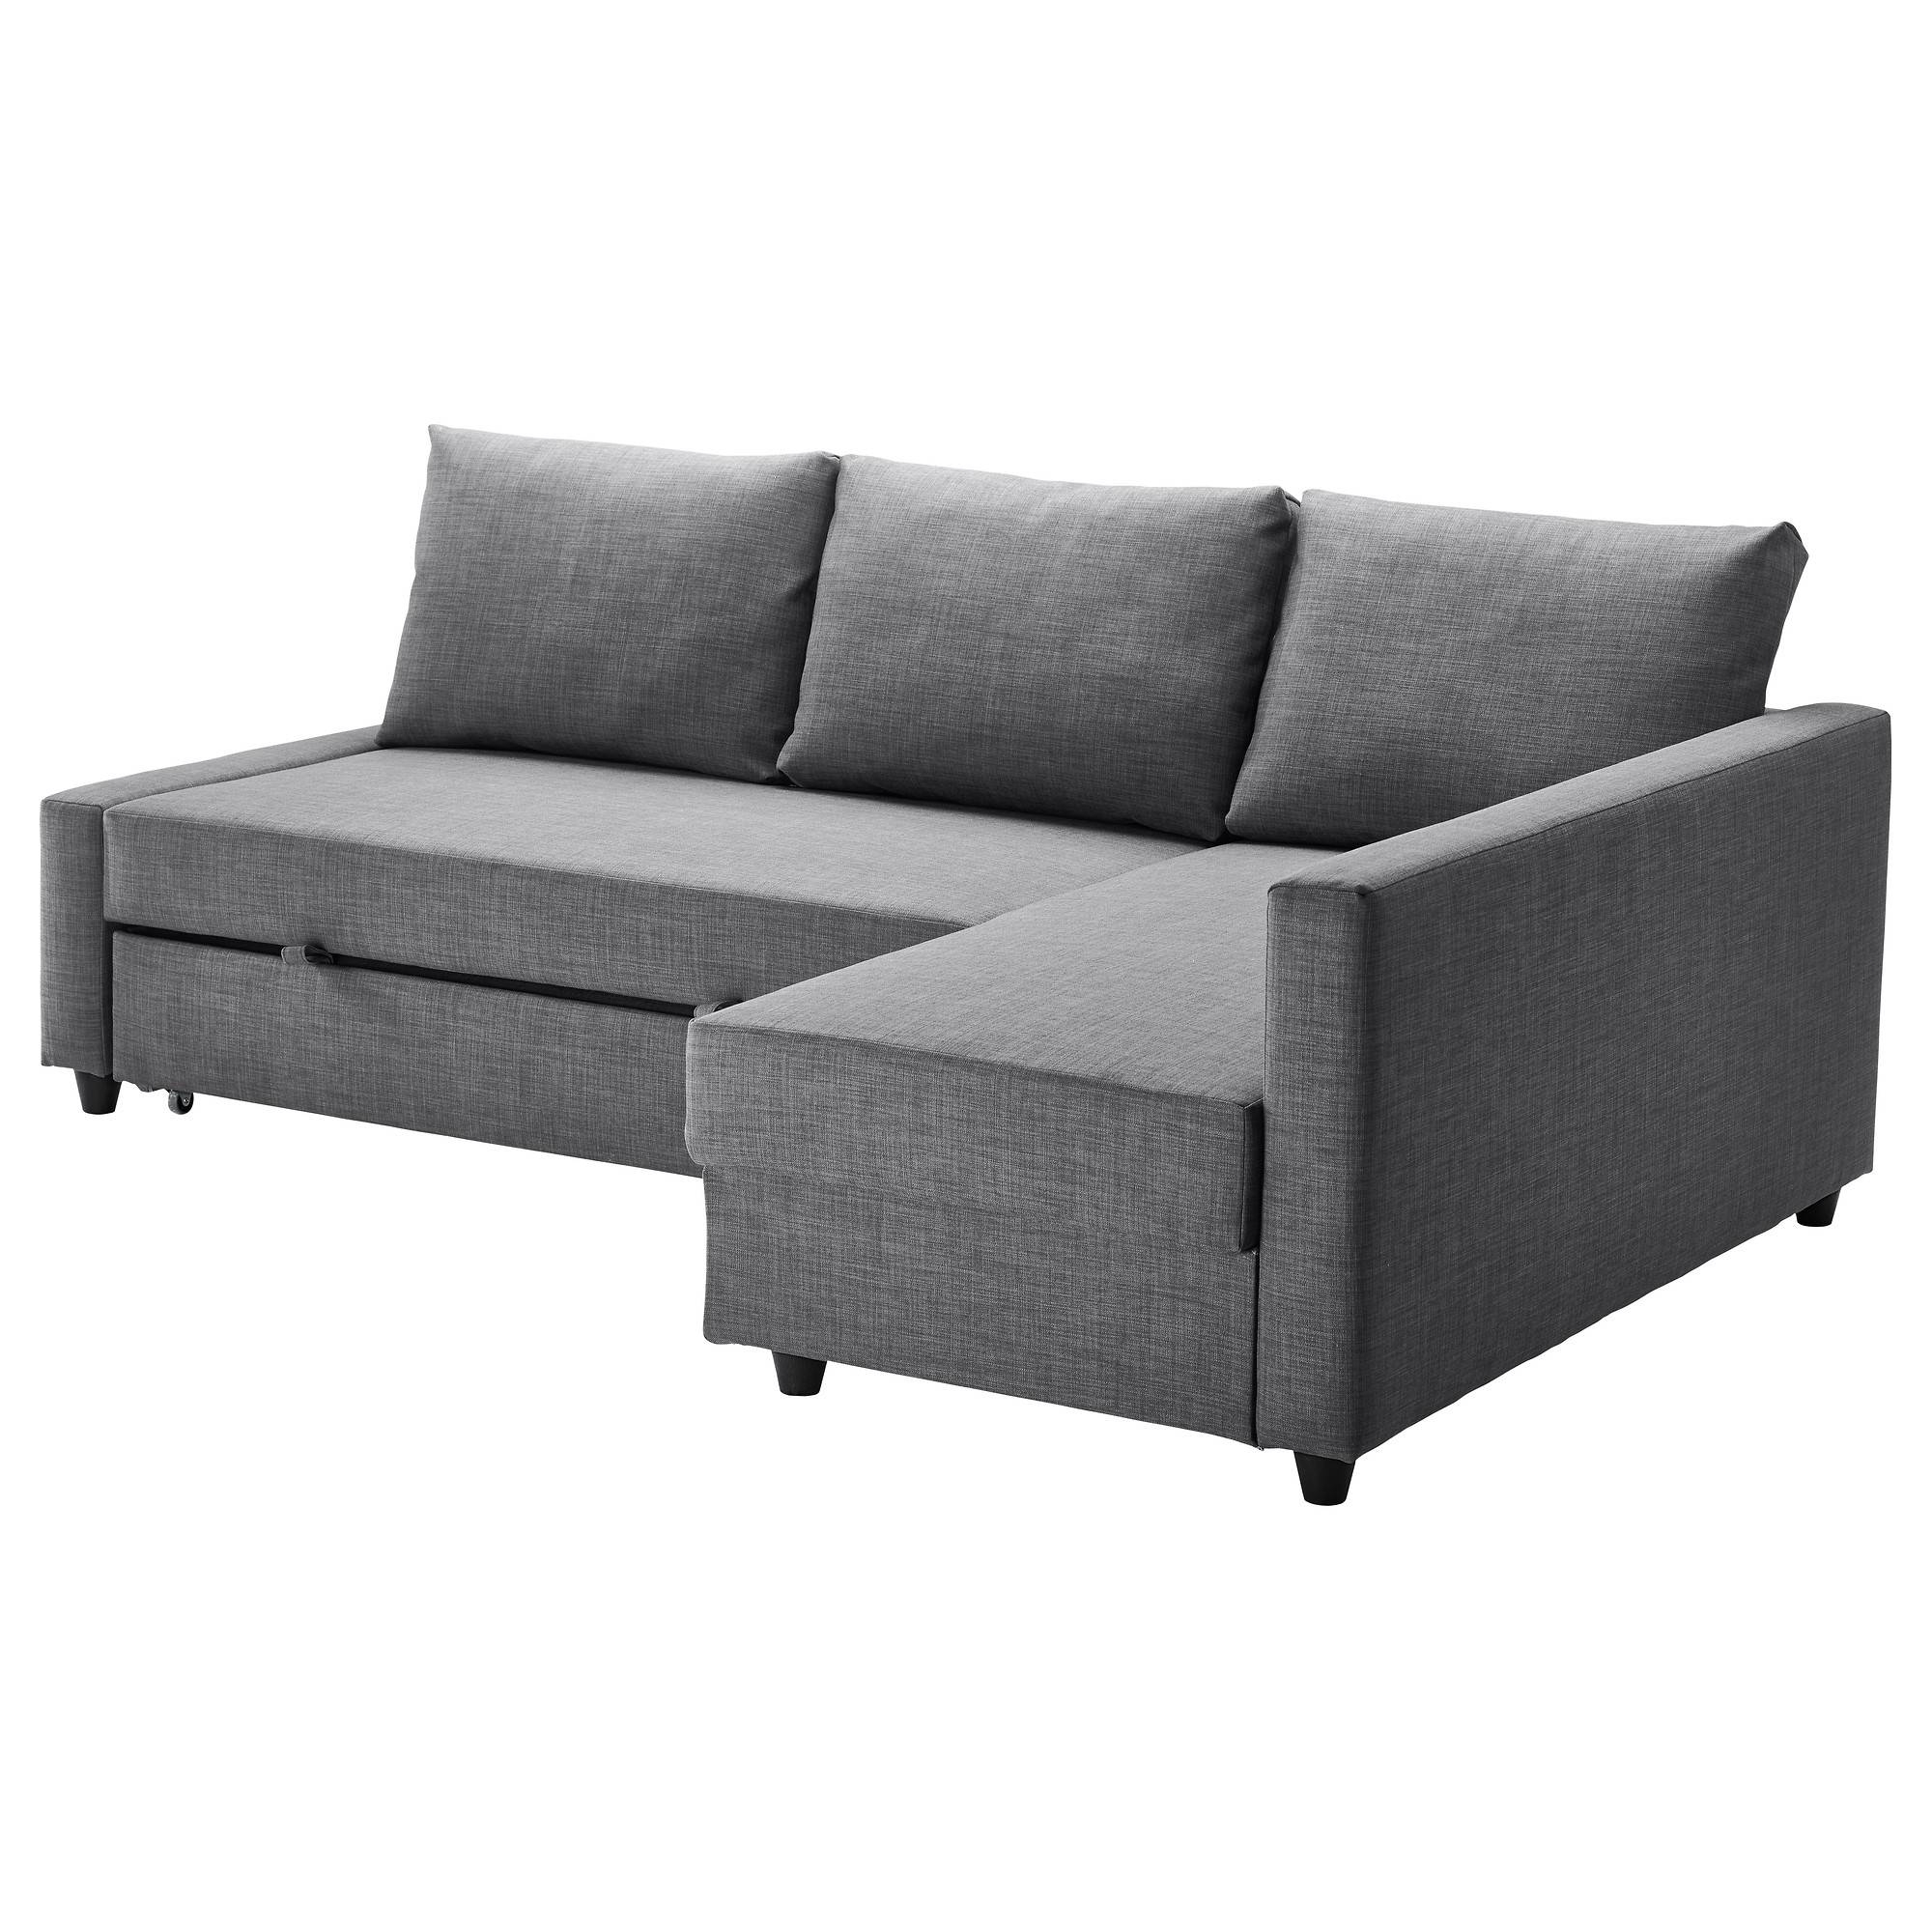 Sofa Beds & Futons - Ikea with Ikea Sectional Sofa Sleeper (Image 21 of 25)